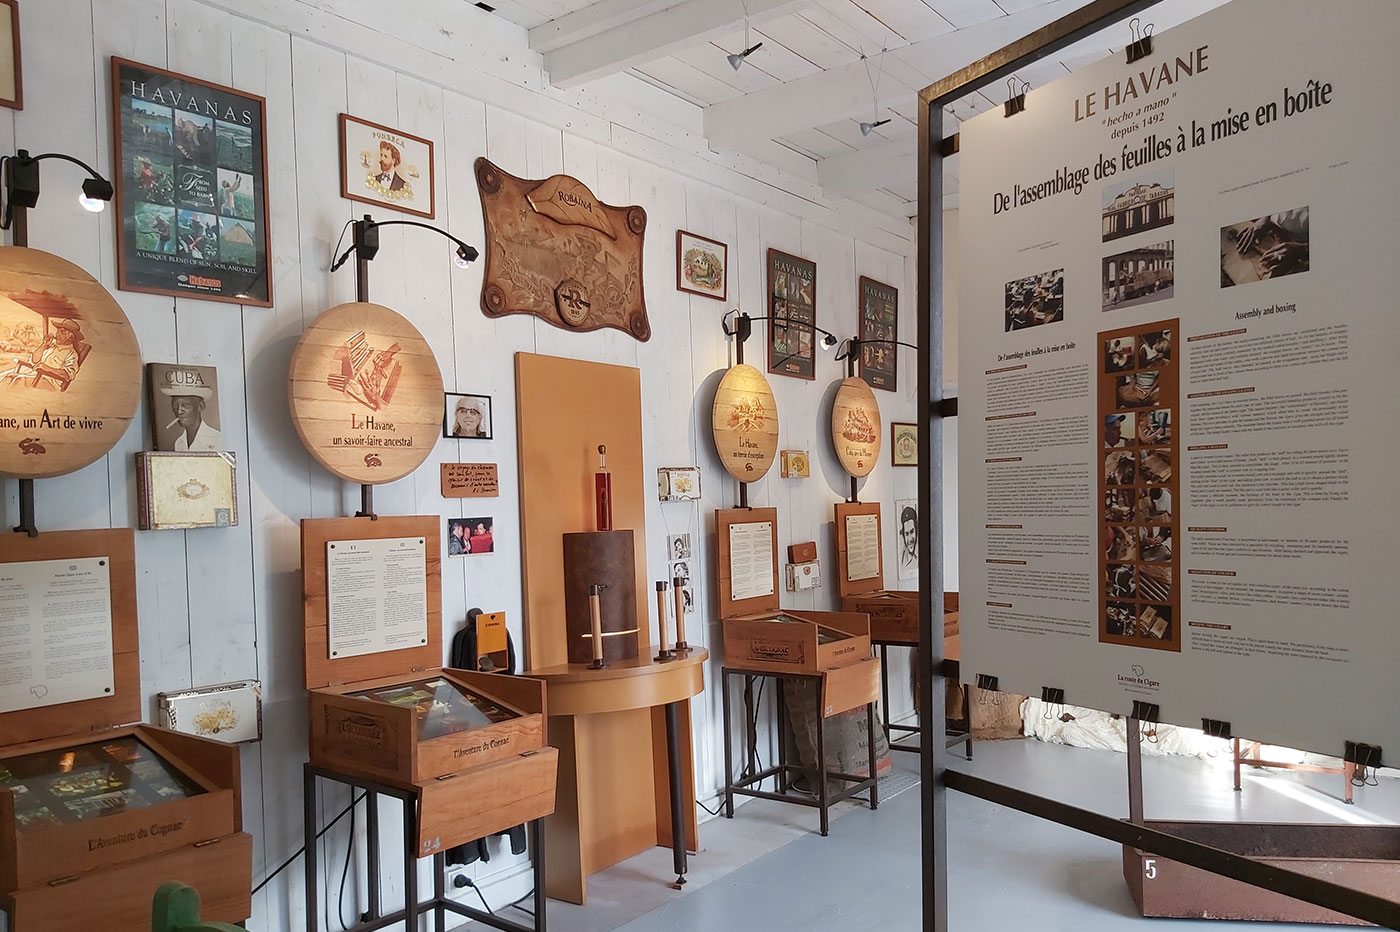 Cuba Exhibition at the Ecomuseum of Cognac